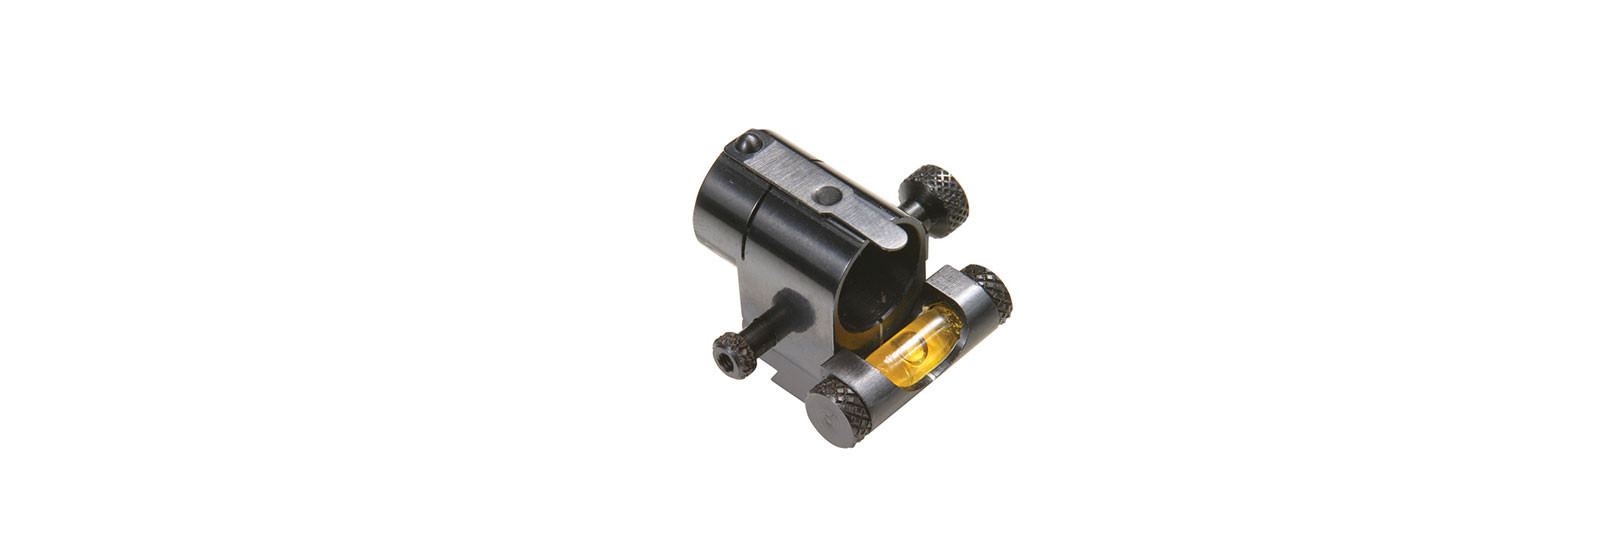 Tunnel sight with adjustment for windage - 12 inserts